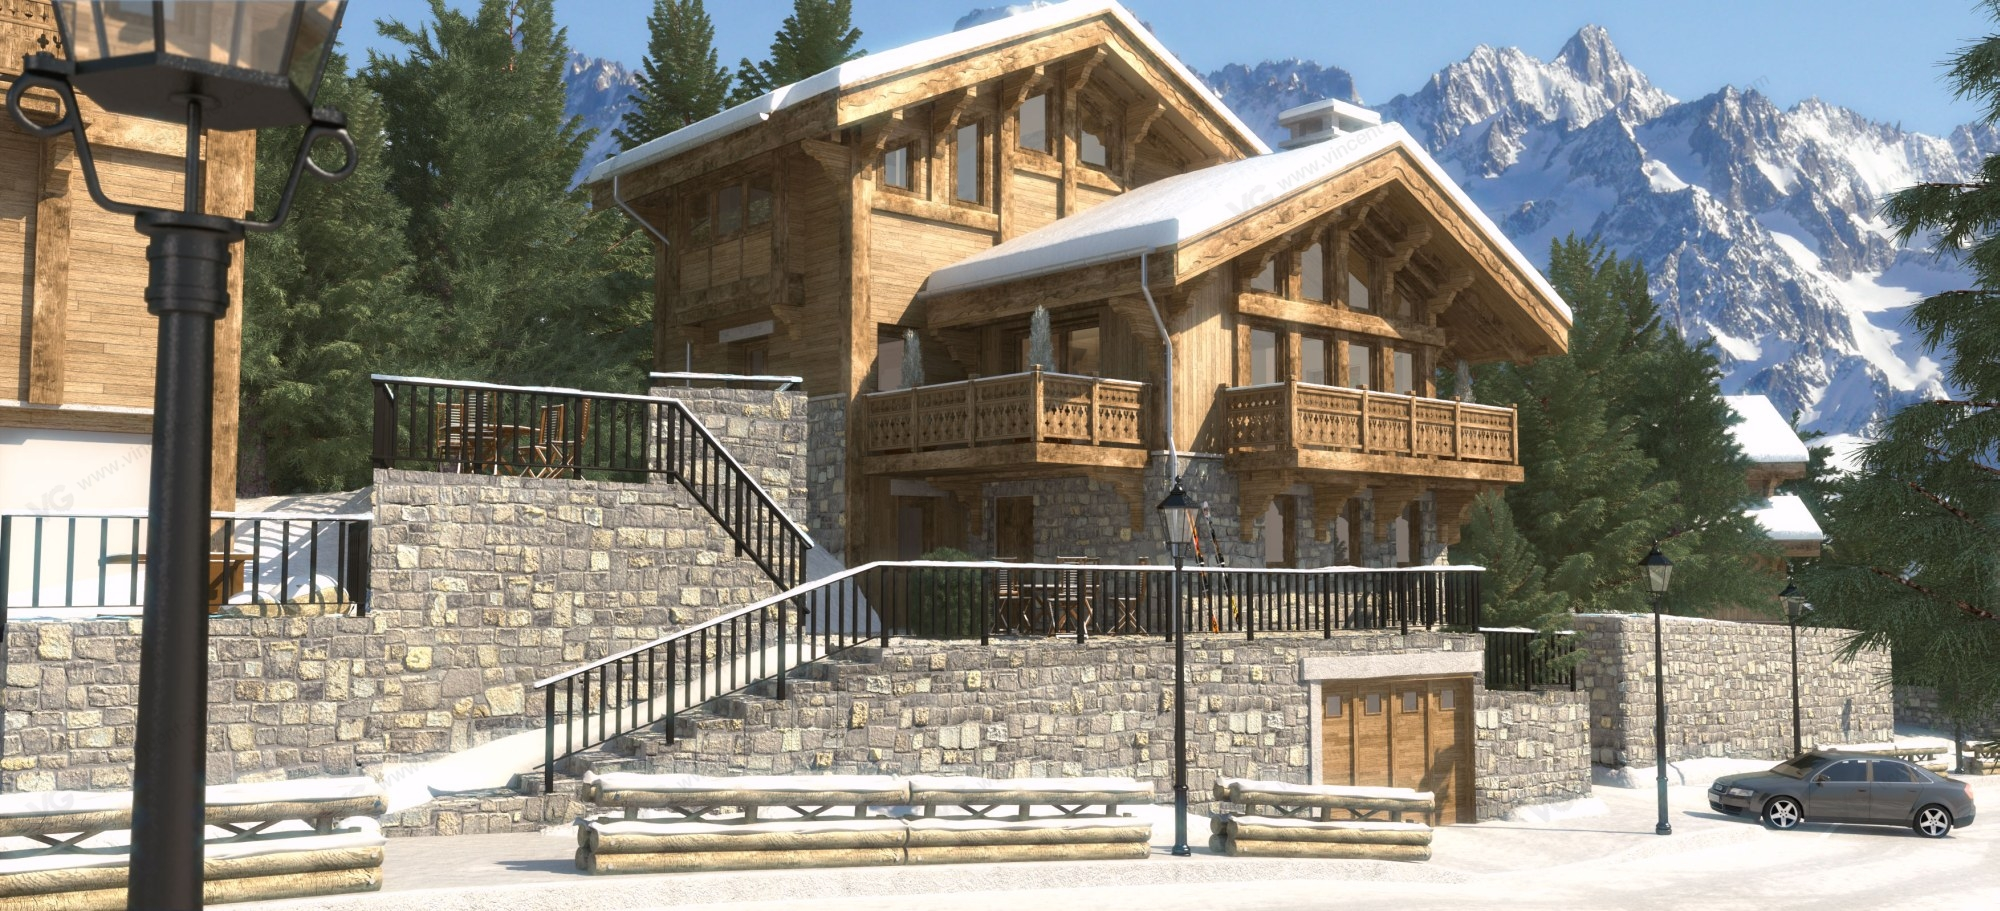 Illustrations 3d d 39 un chalet courchevel 1850 vincent grieu infographiste 3d - Chalet architectuur ...